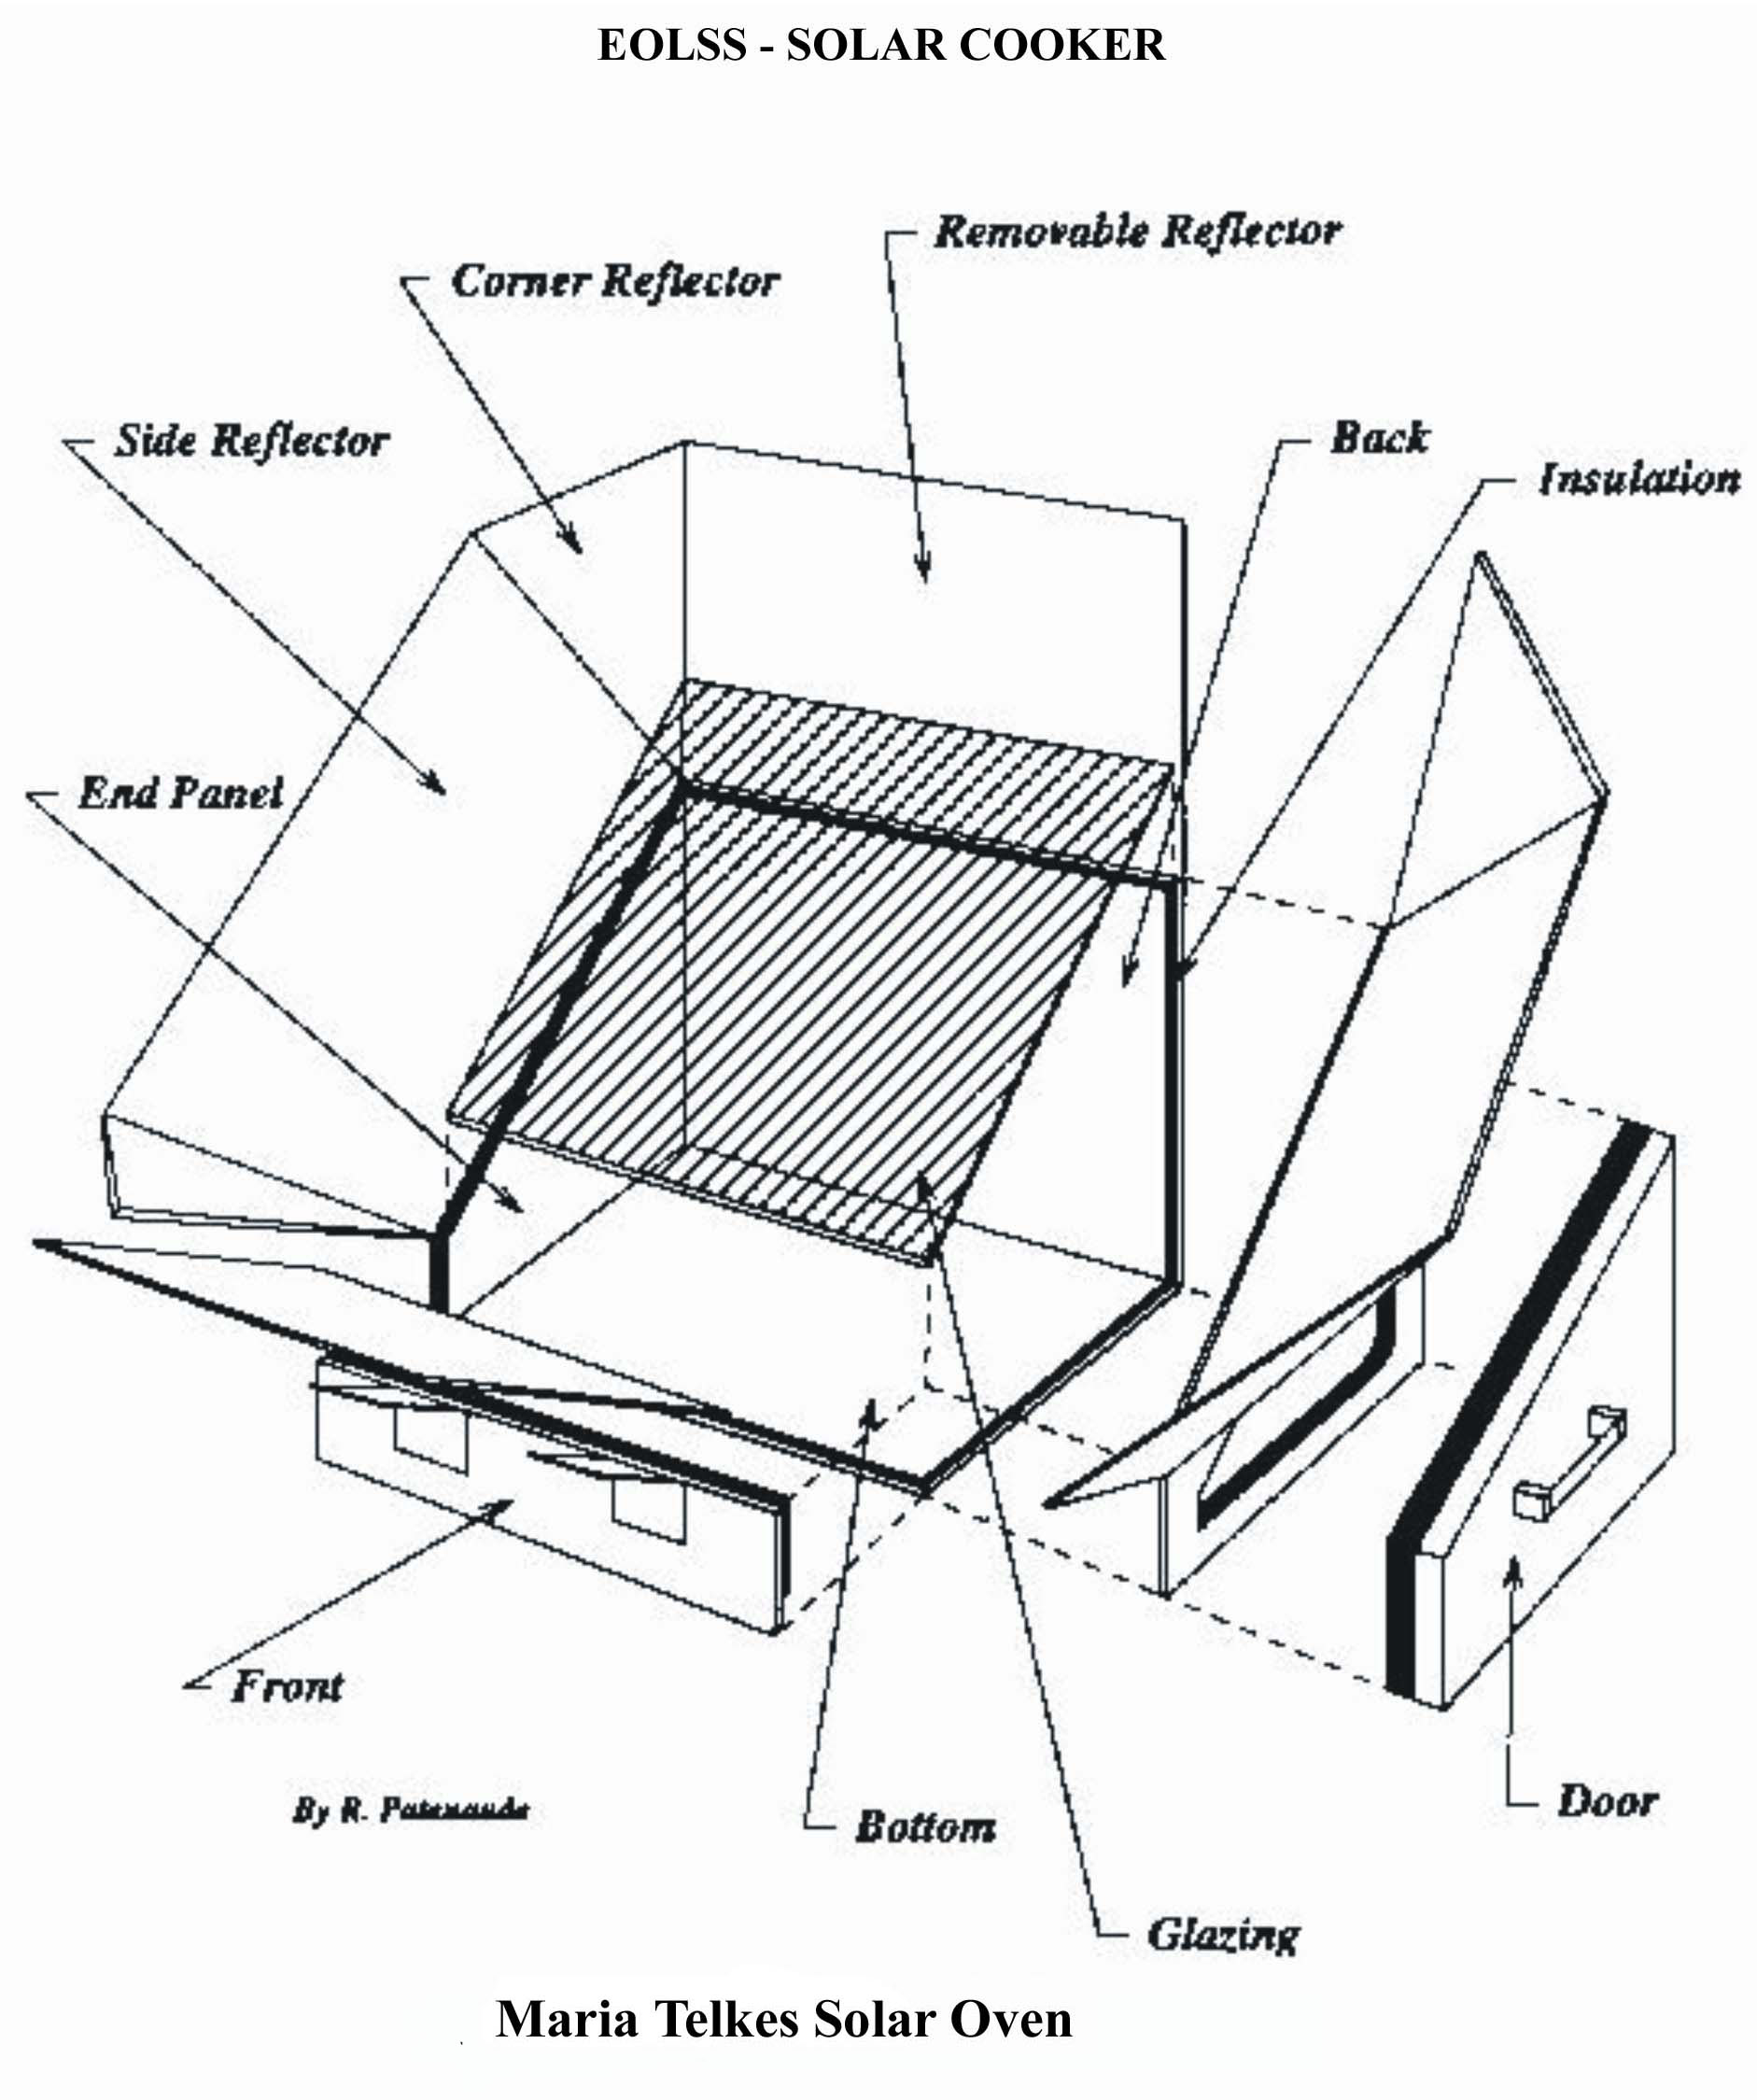 She Shed Cost Solar Cooker Design Maria Telkes